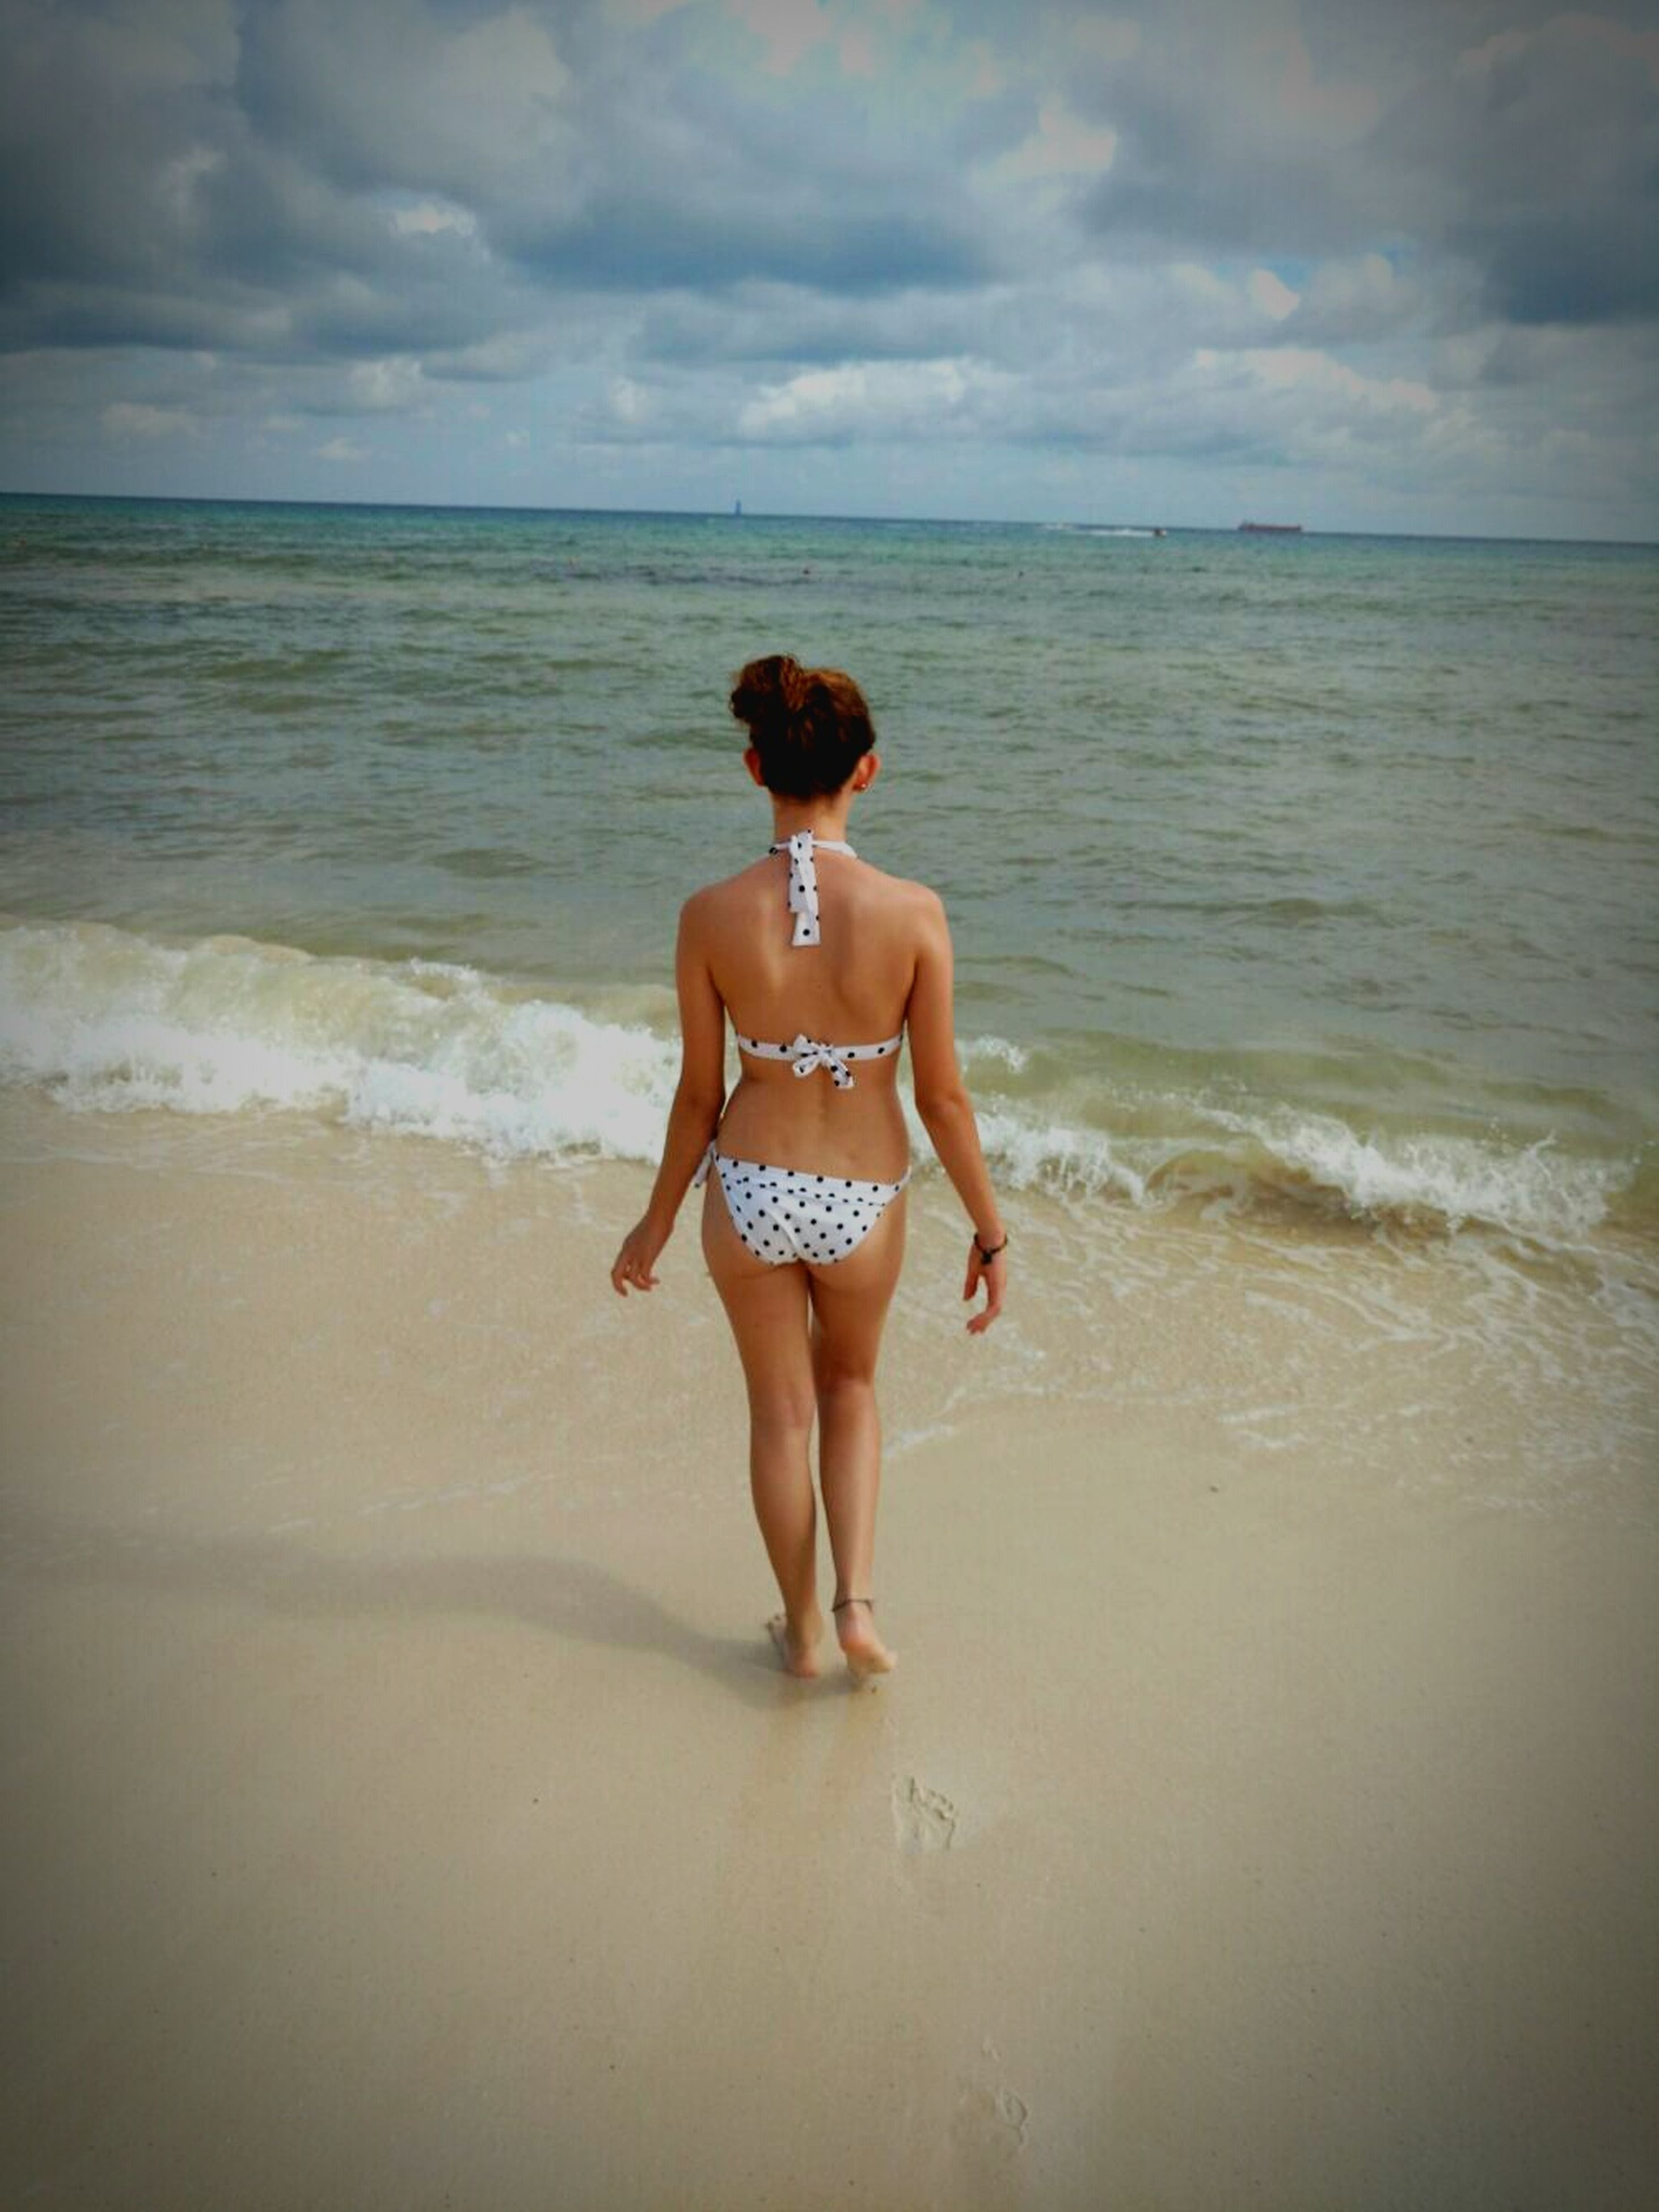 water, sea, beach, full length, horizon over water, sky, leisure activity, lifestyles, shore, vacations, sand, childhood, person, casual clothing, young women, standing, rear view, girls